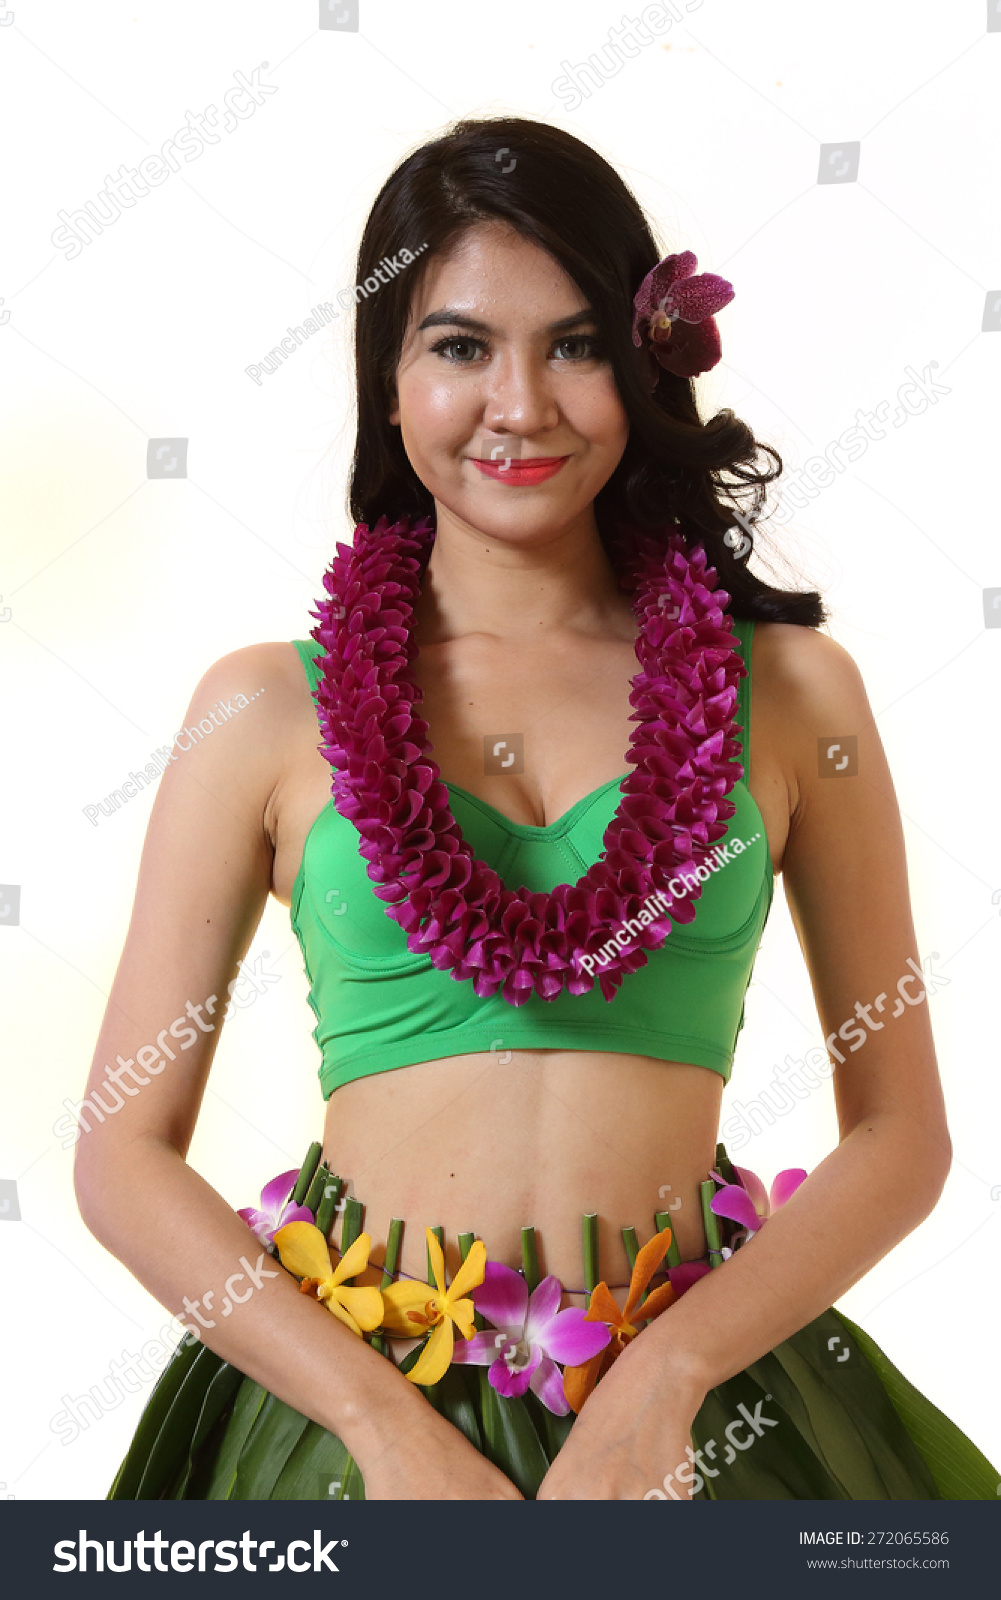 Beautiful woman dress hawaiian style flower stock photo 272065586 beautiful woman dress in hawaiian style with flower lei garland of orchids on white background izmirmasajfo Images